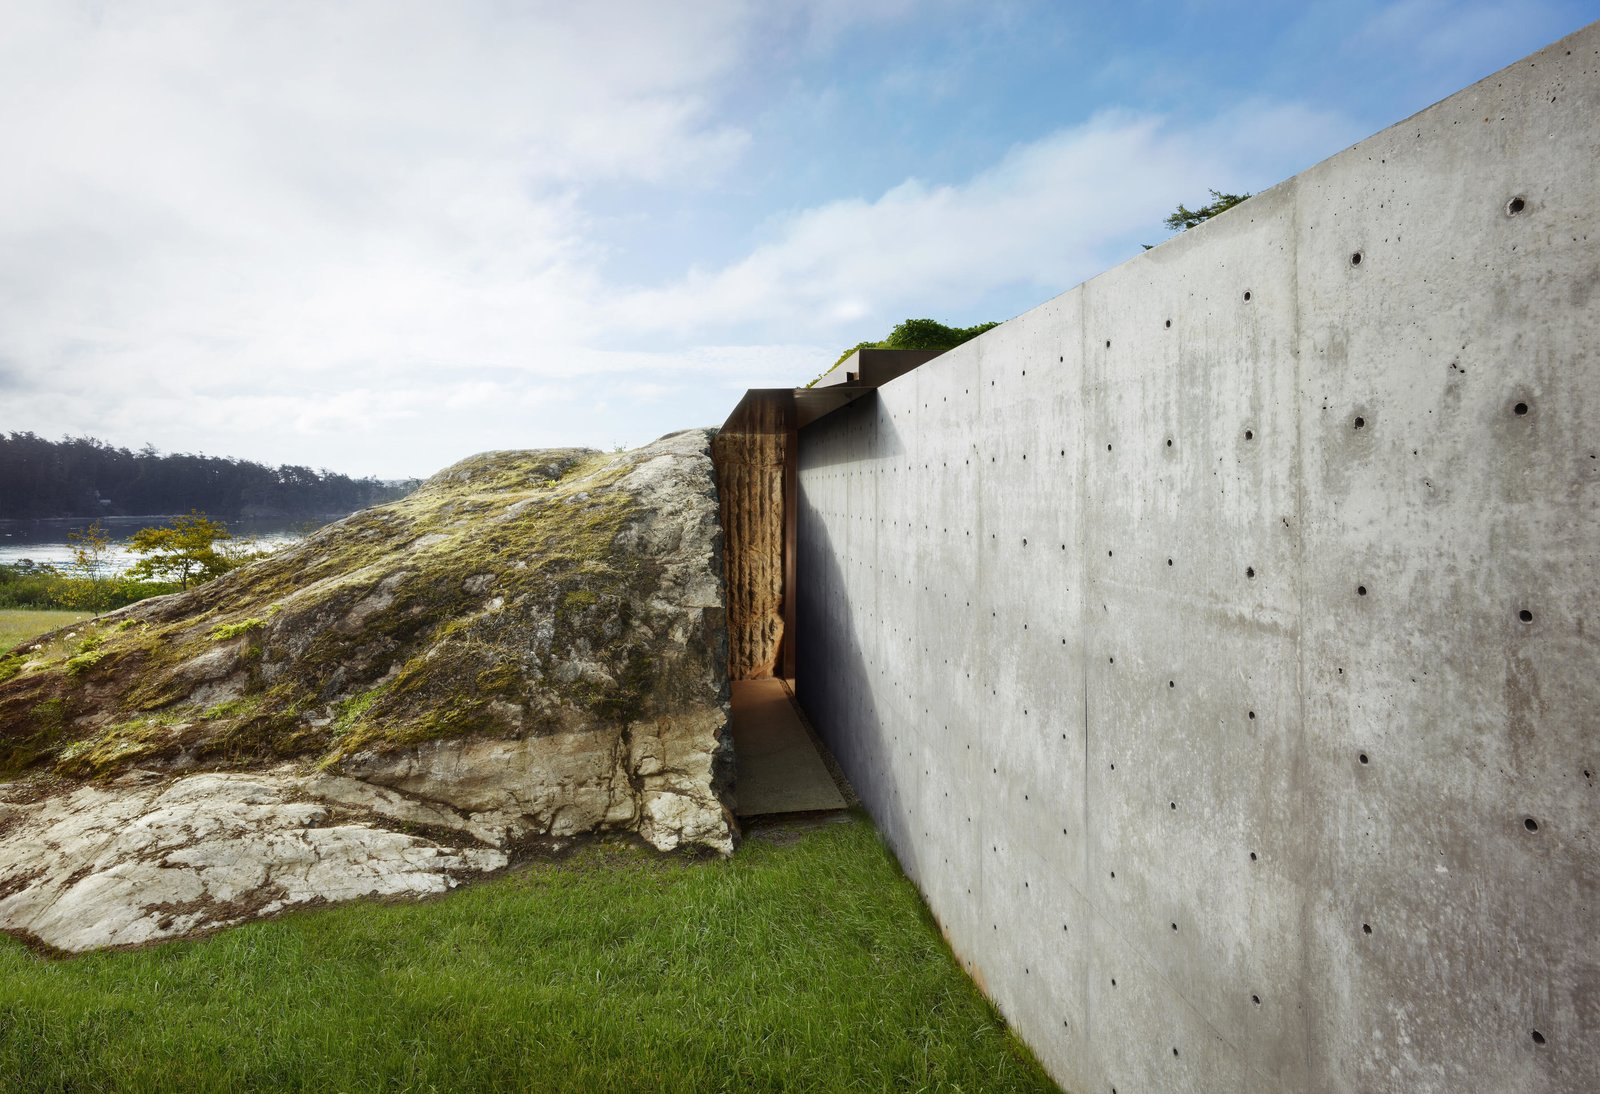 Outdoor, Grass, and Boulders The Pierre | Olson Kundig  Best Photos from The Pierre